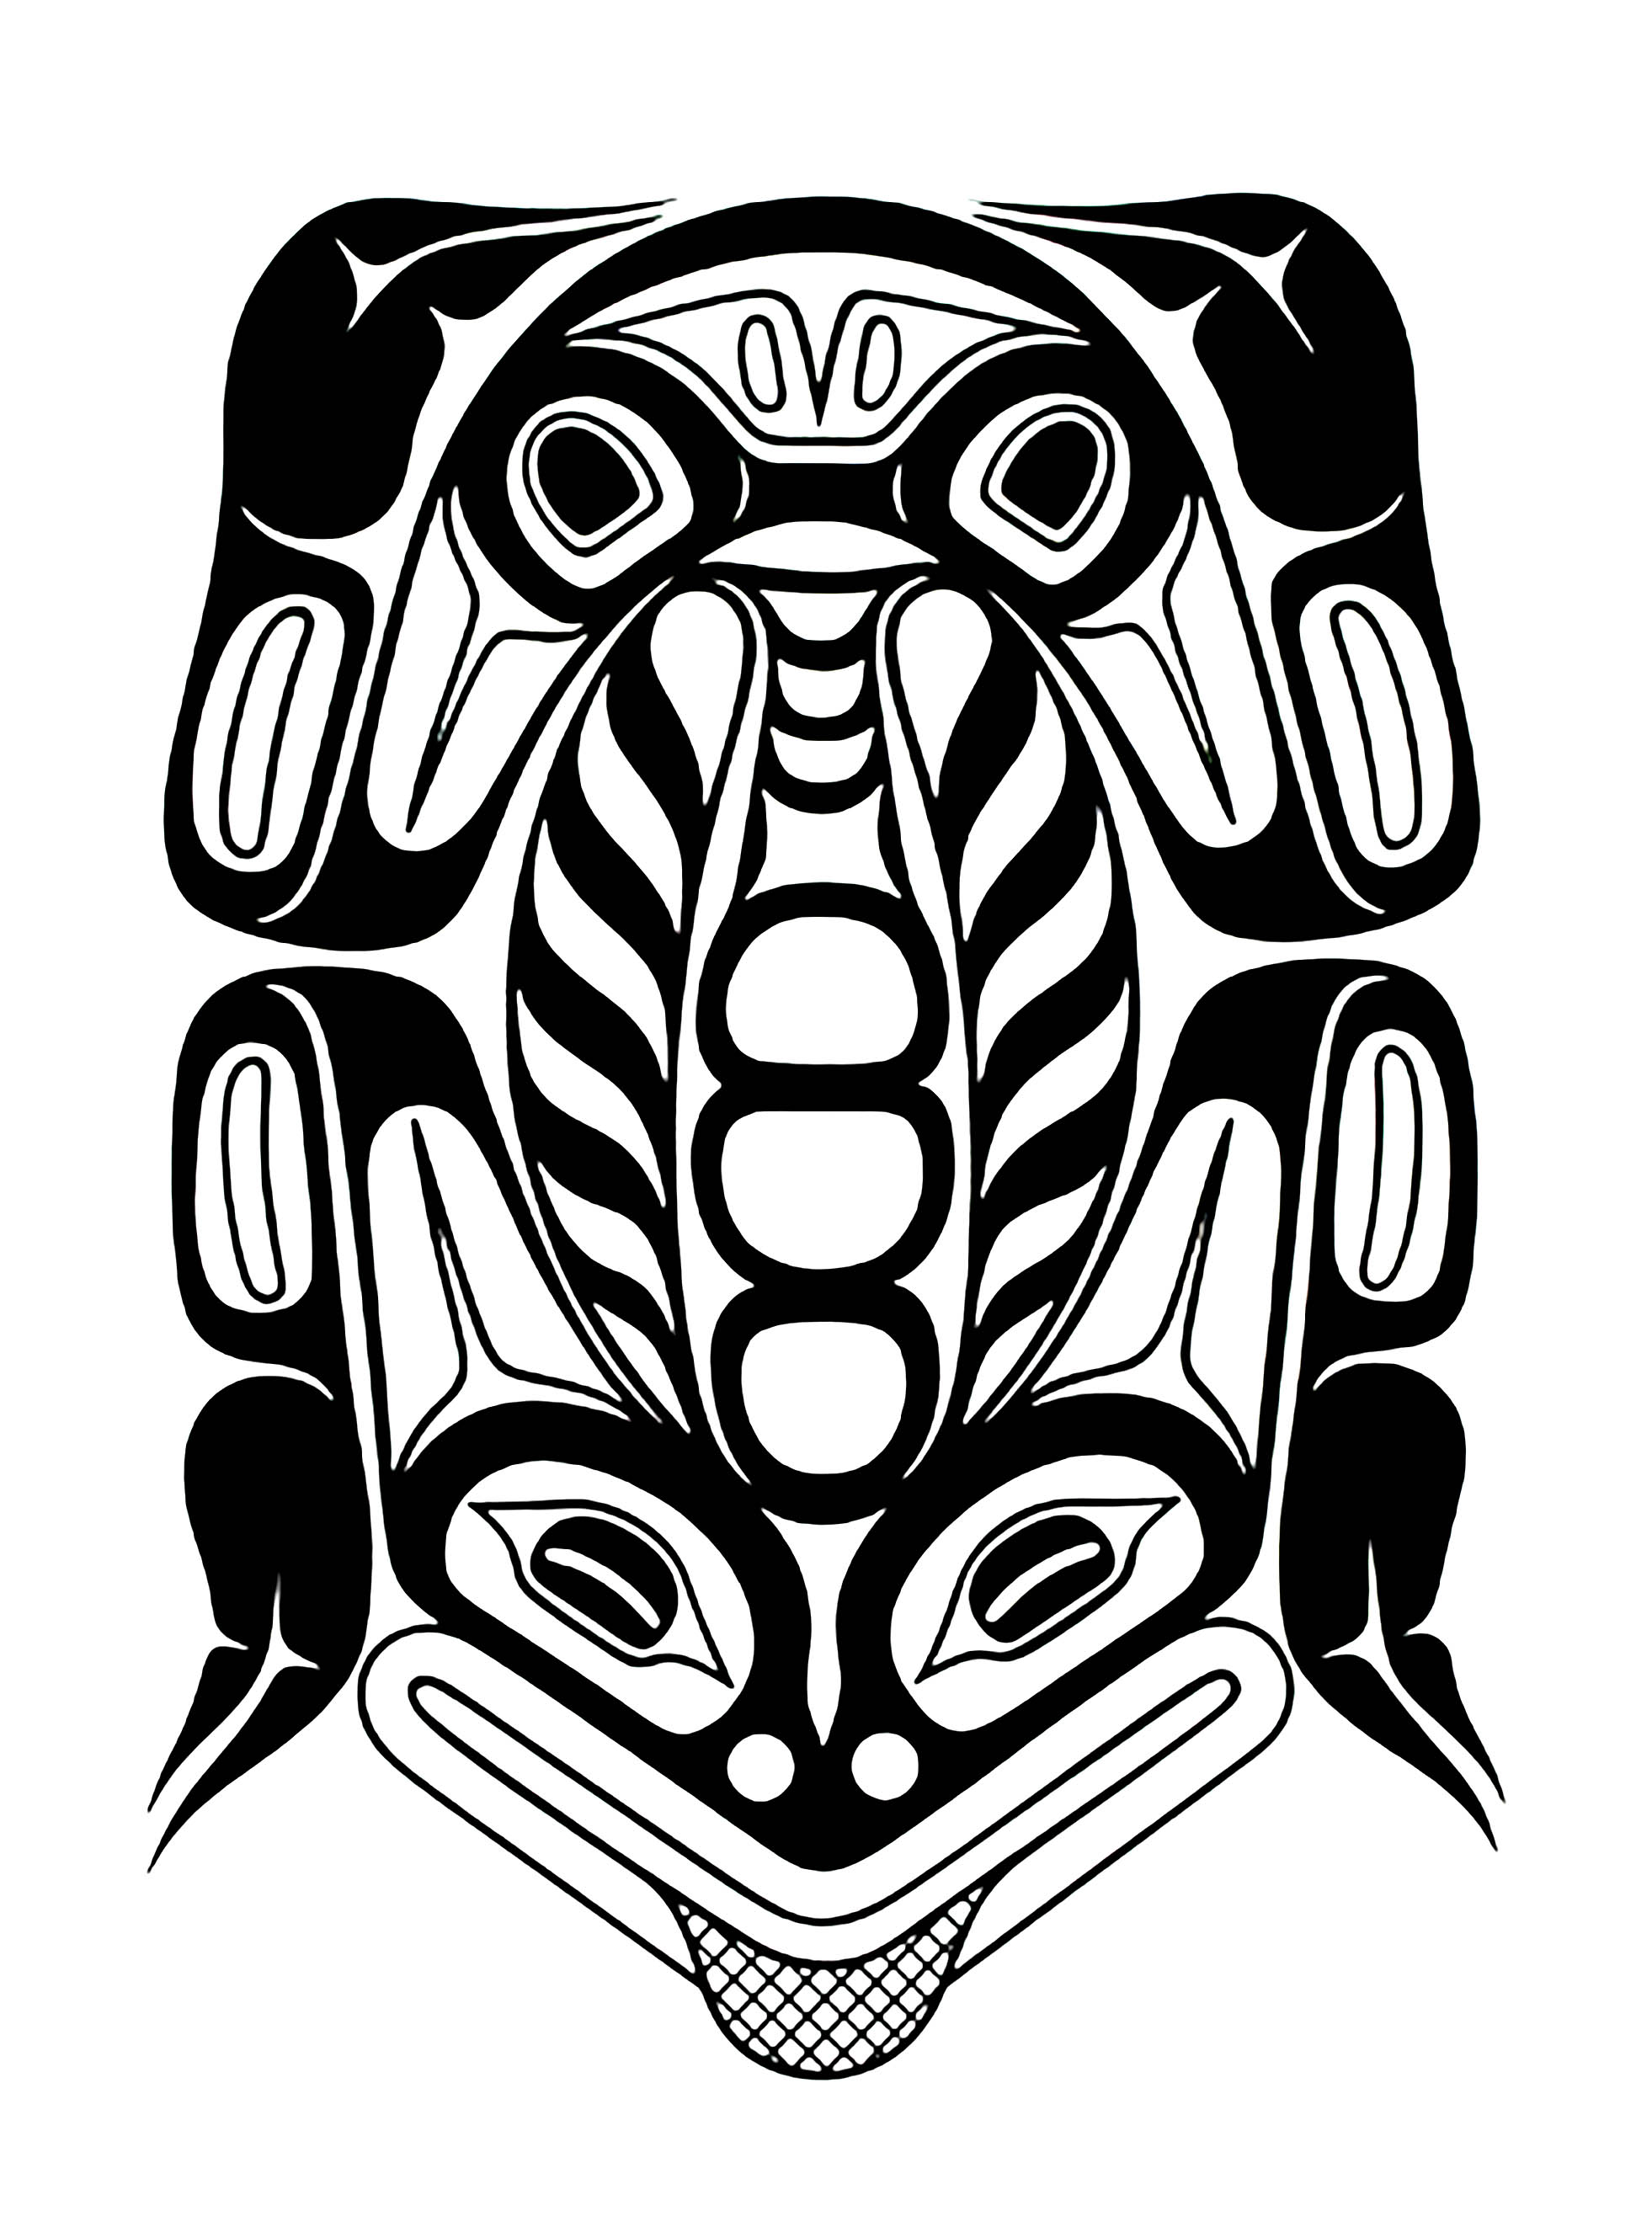 art northwest coastal people northern frog native american art